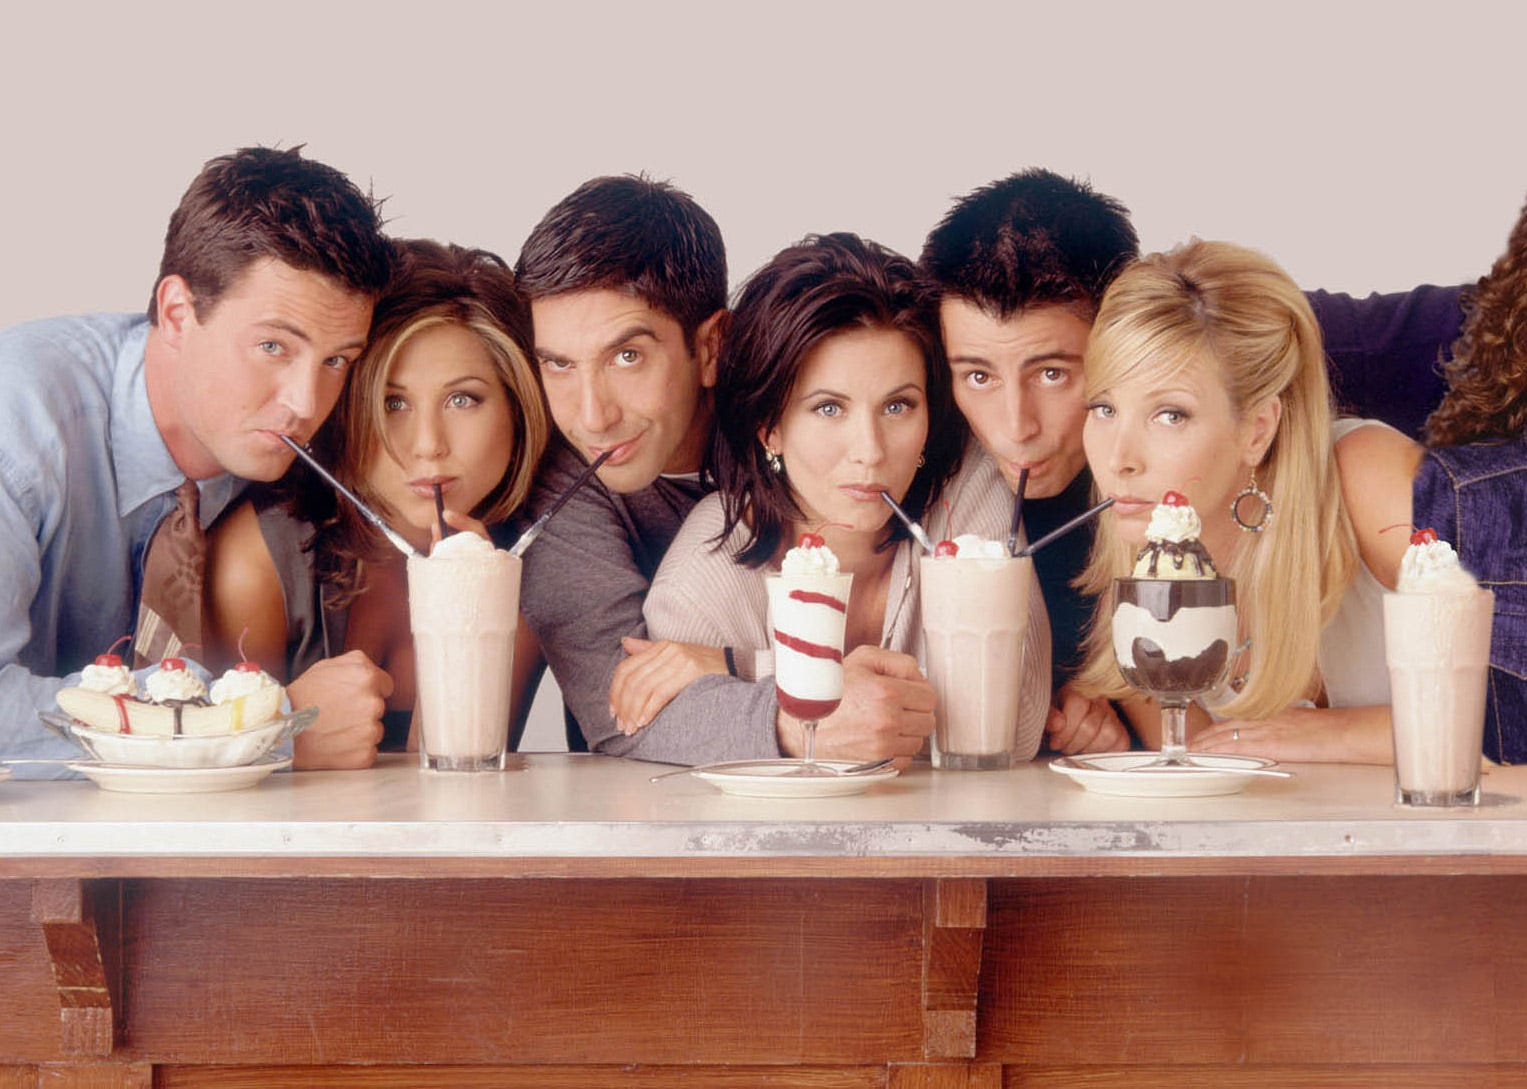 Friends' pop-up exhibit is coming to New York – the new 'friend zone'